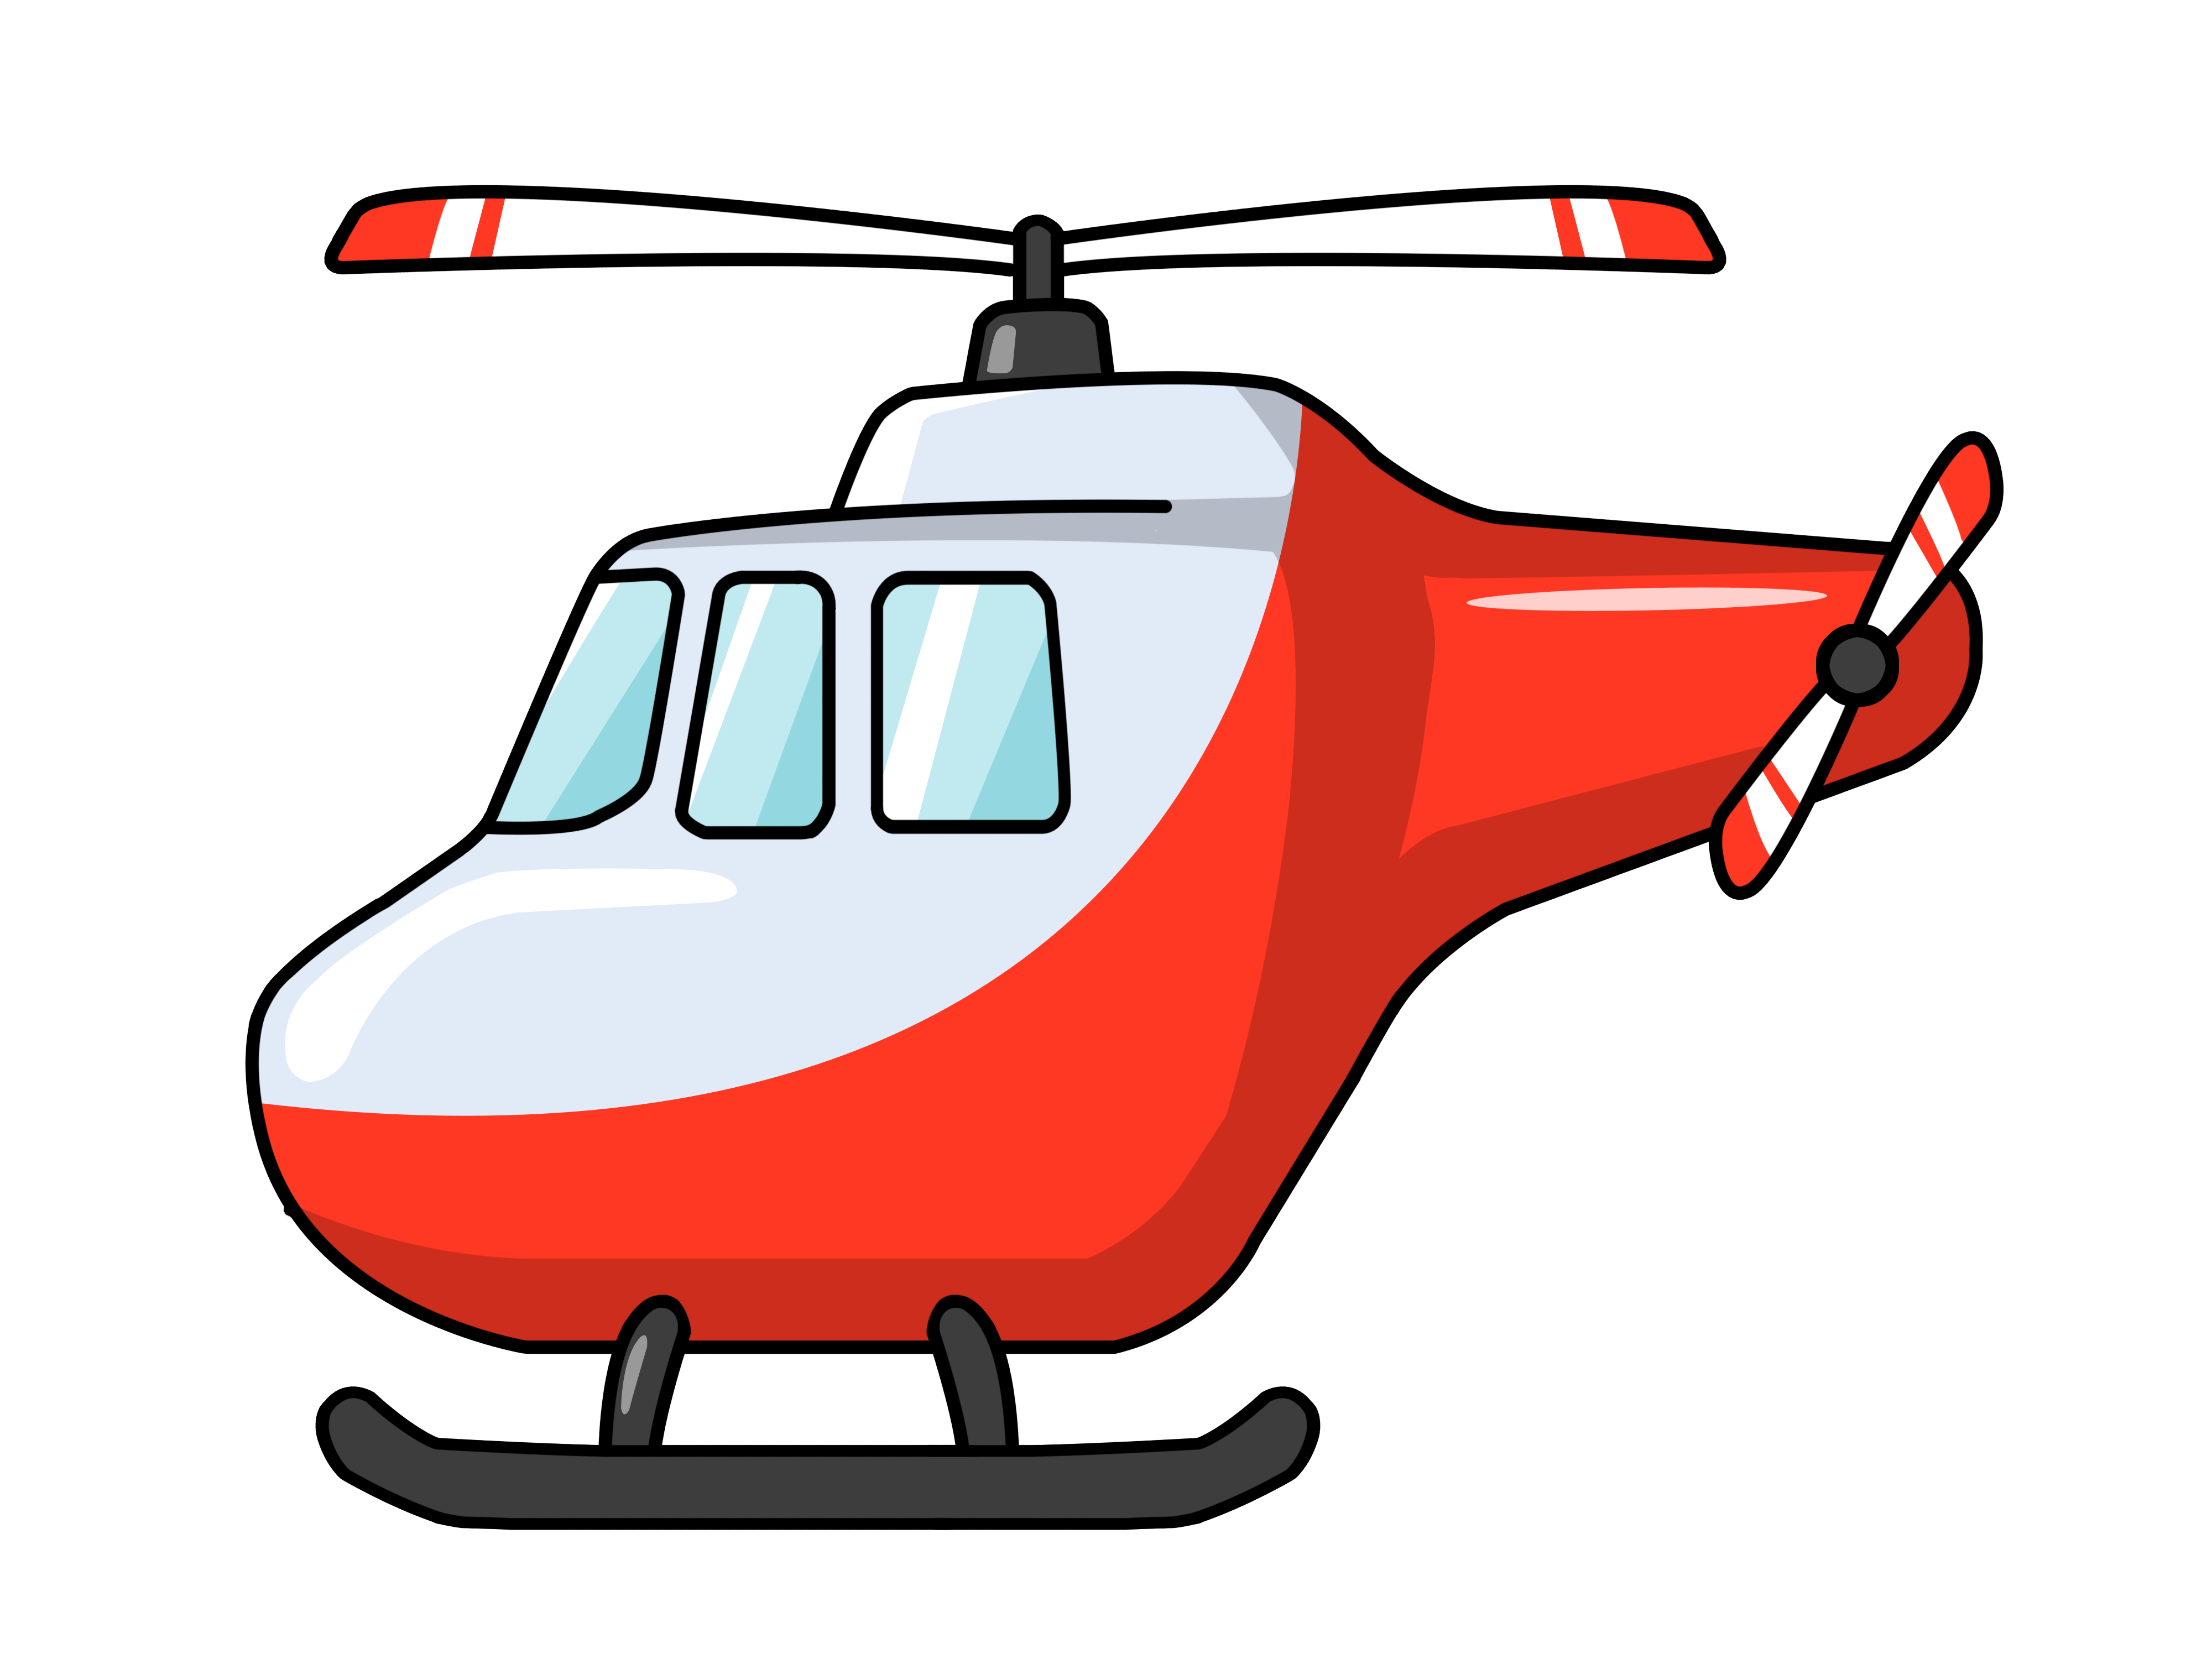 Helicopter clipart image graphic freeuse stock Free Helicopter Cliparts, Download Free Clip Art, Free Clip ... graphic freeuse stock